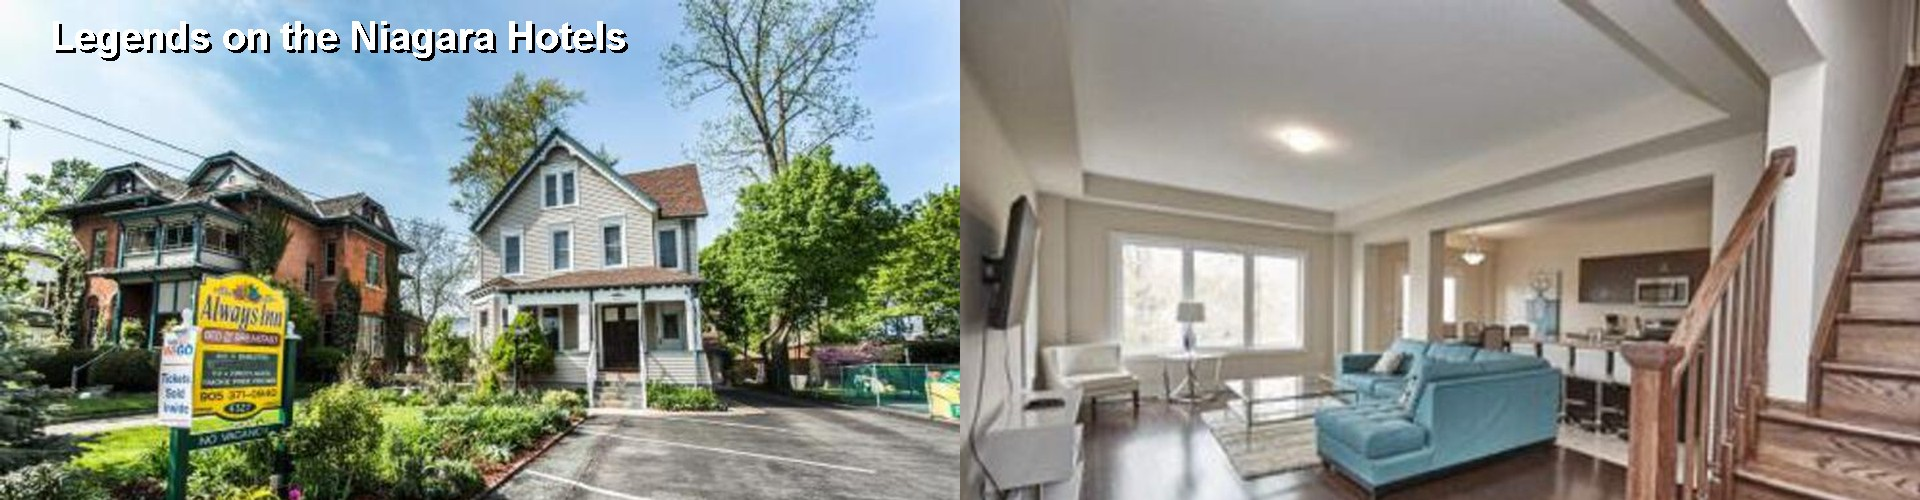 47 Best Hotels Near Legends On The Niagara In Niagara Falls Ny